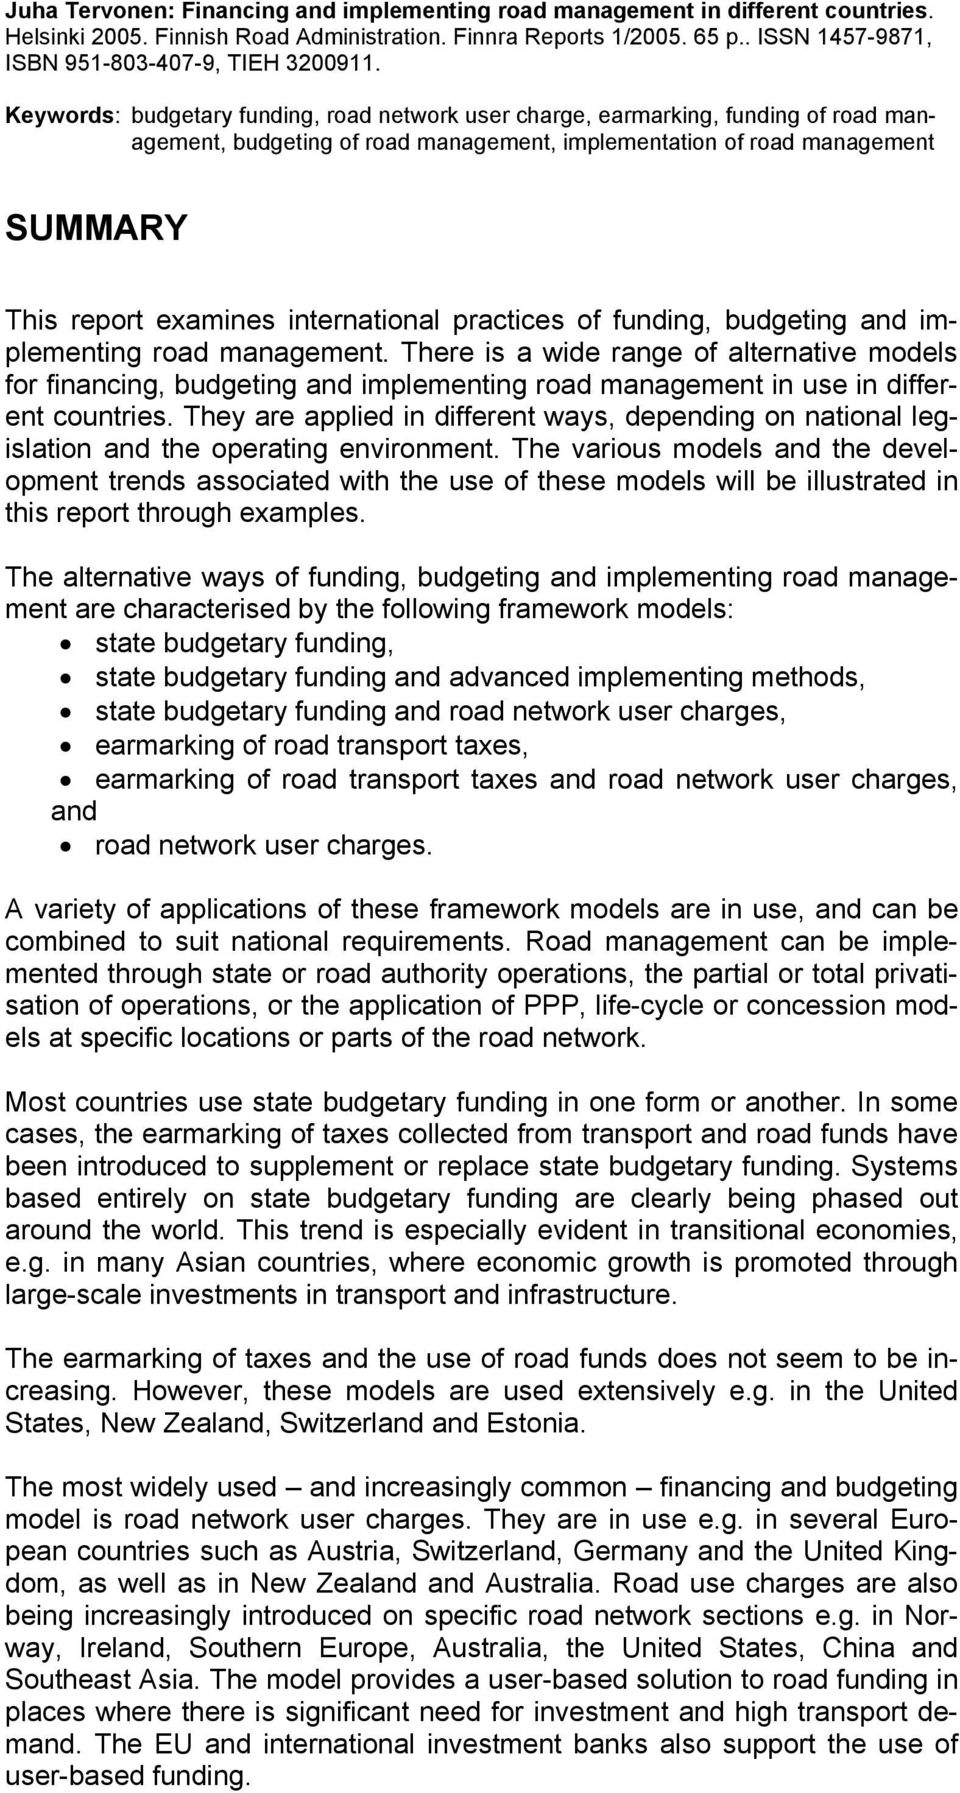 Keywords: budgetary funding, road network user charge, earmarking, funding of road management, budgeting of road management, implementation of road management SUMMARY This report examines